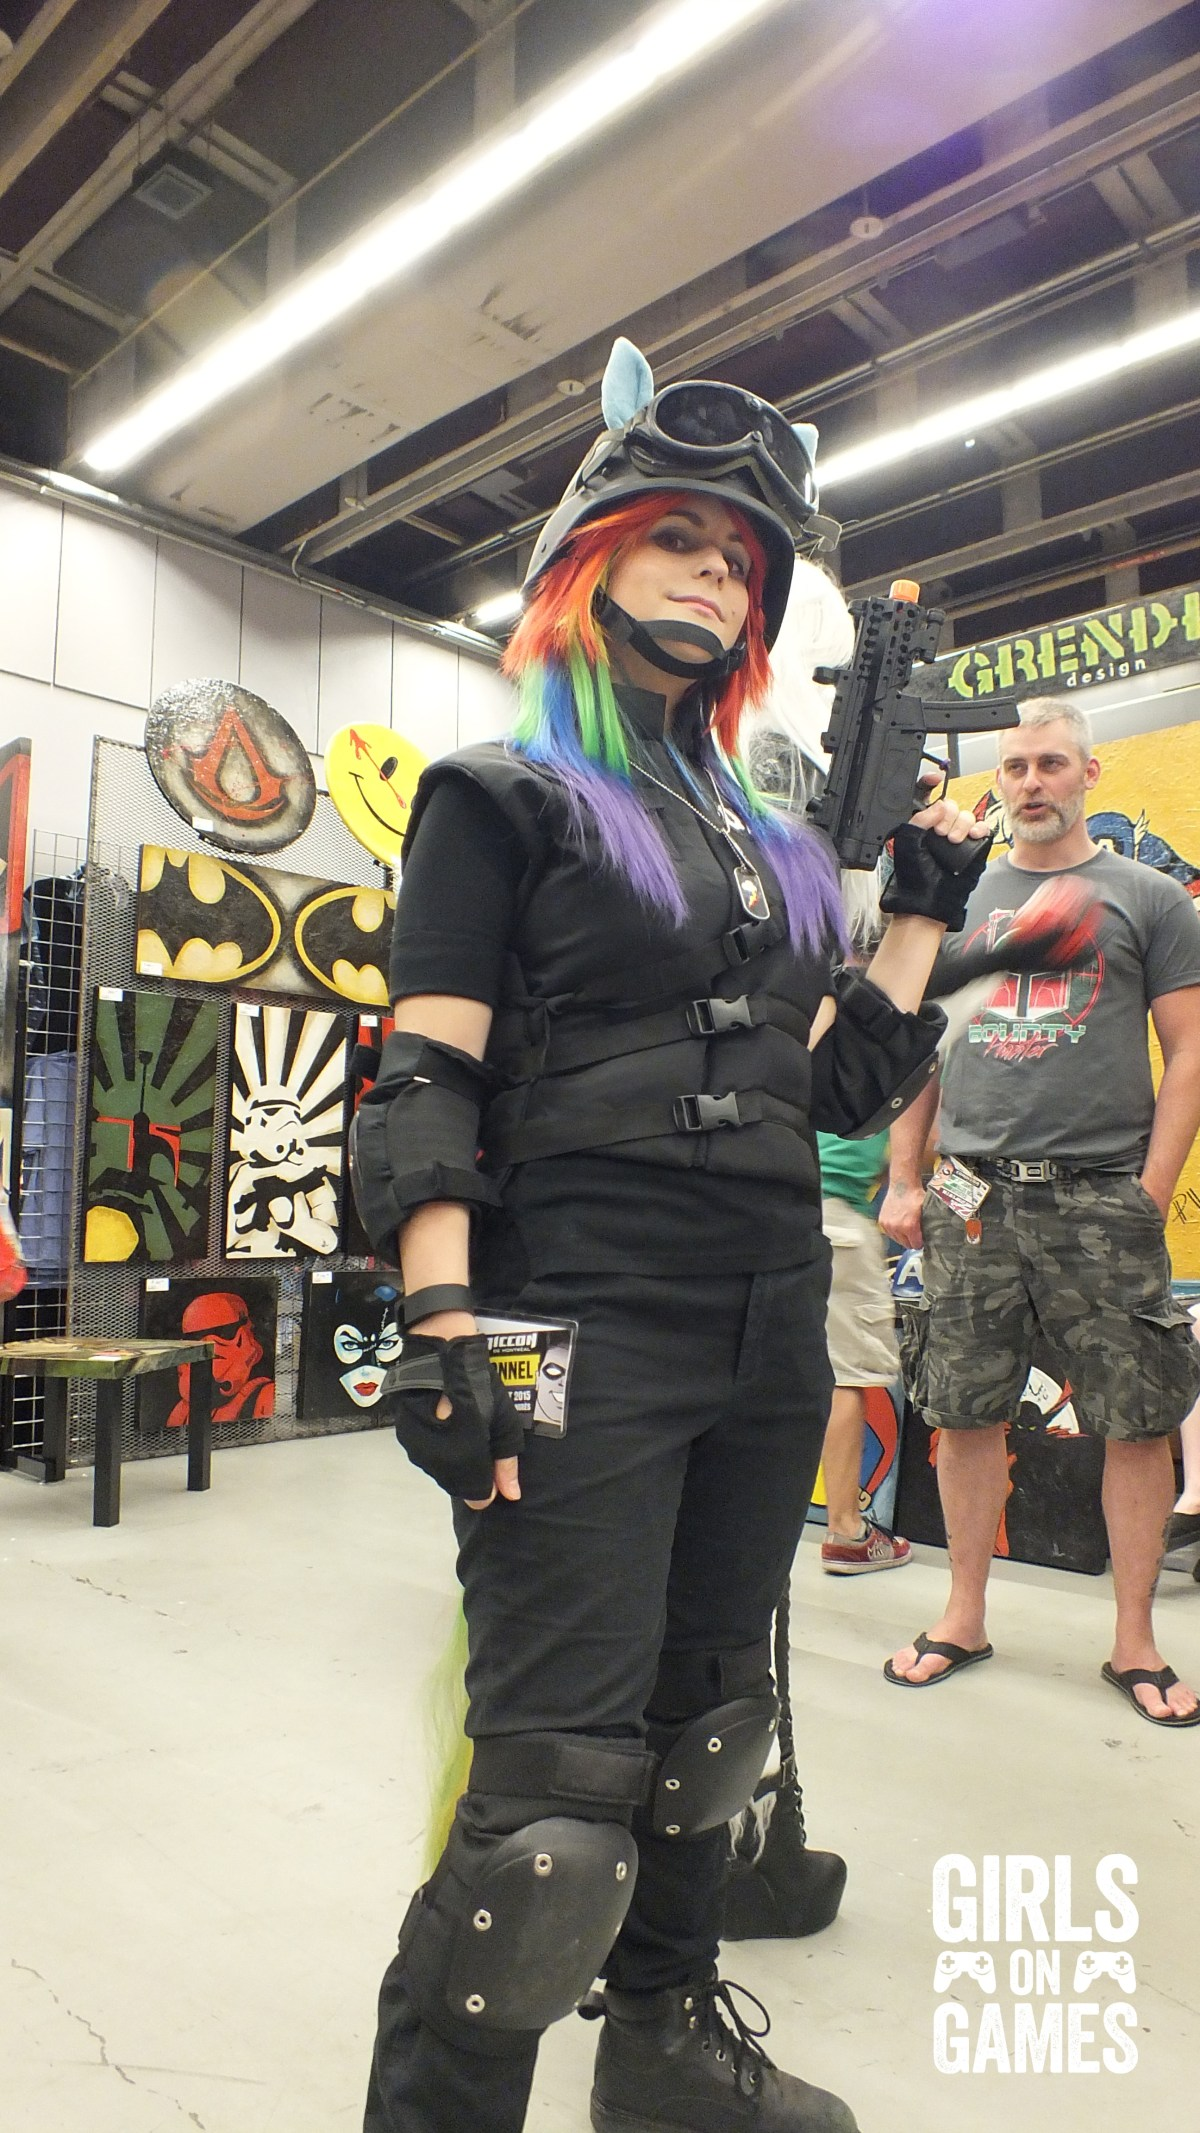 Rainbow Siege Dash cosplay at Montreal Comiccon 2015. Photo © Simon Marcoux / Girls on Games